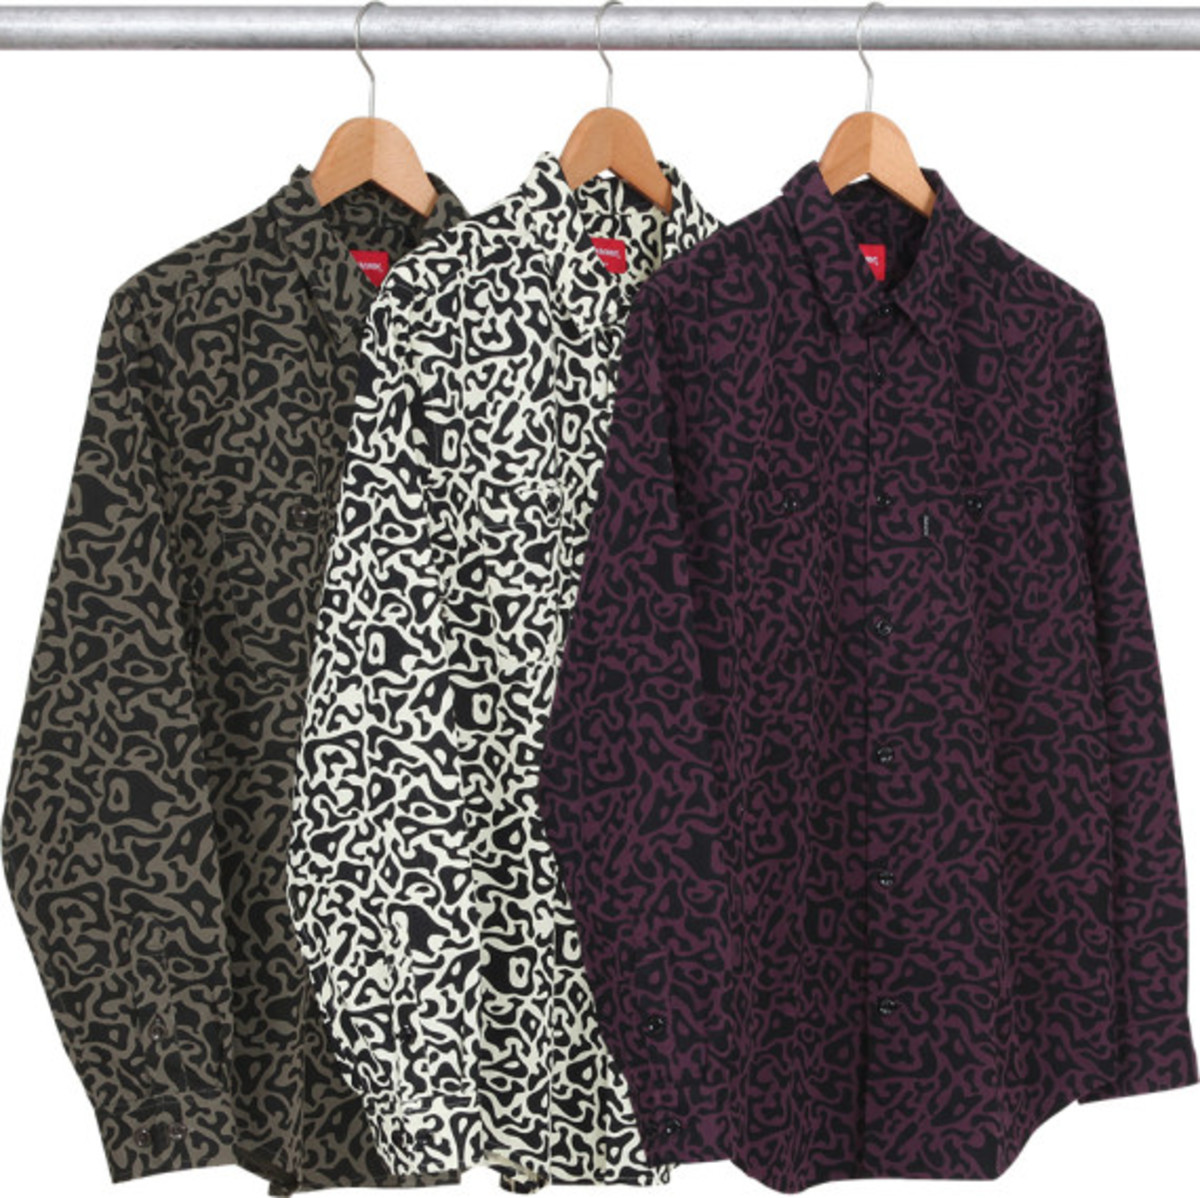 supreme-fall-winter-2013-apparel-collection-027